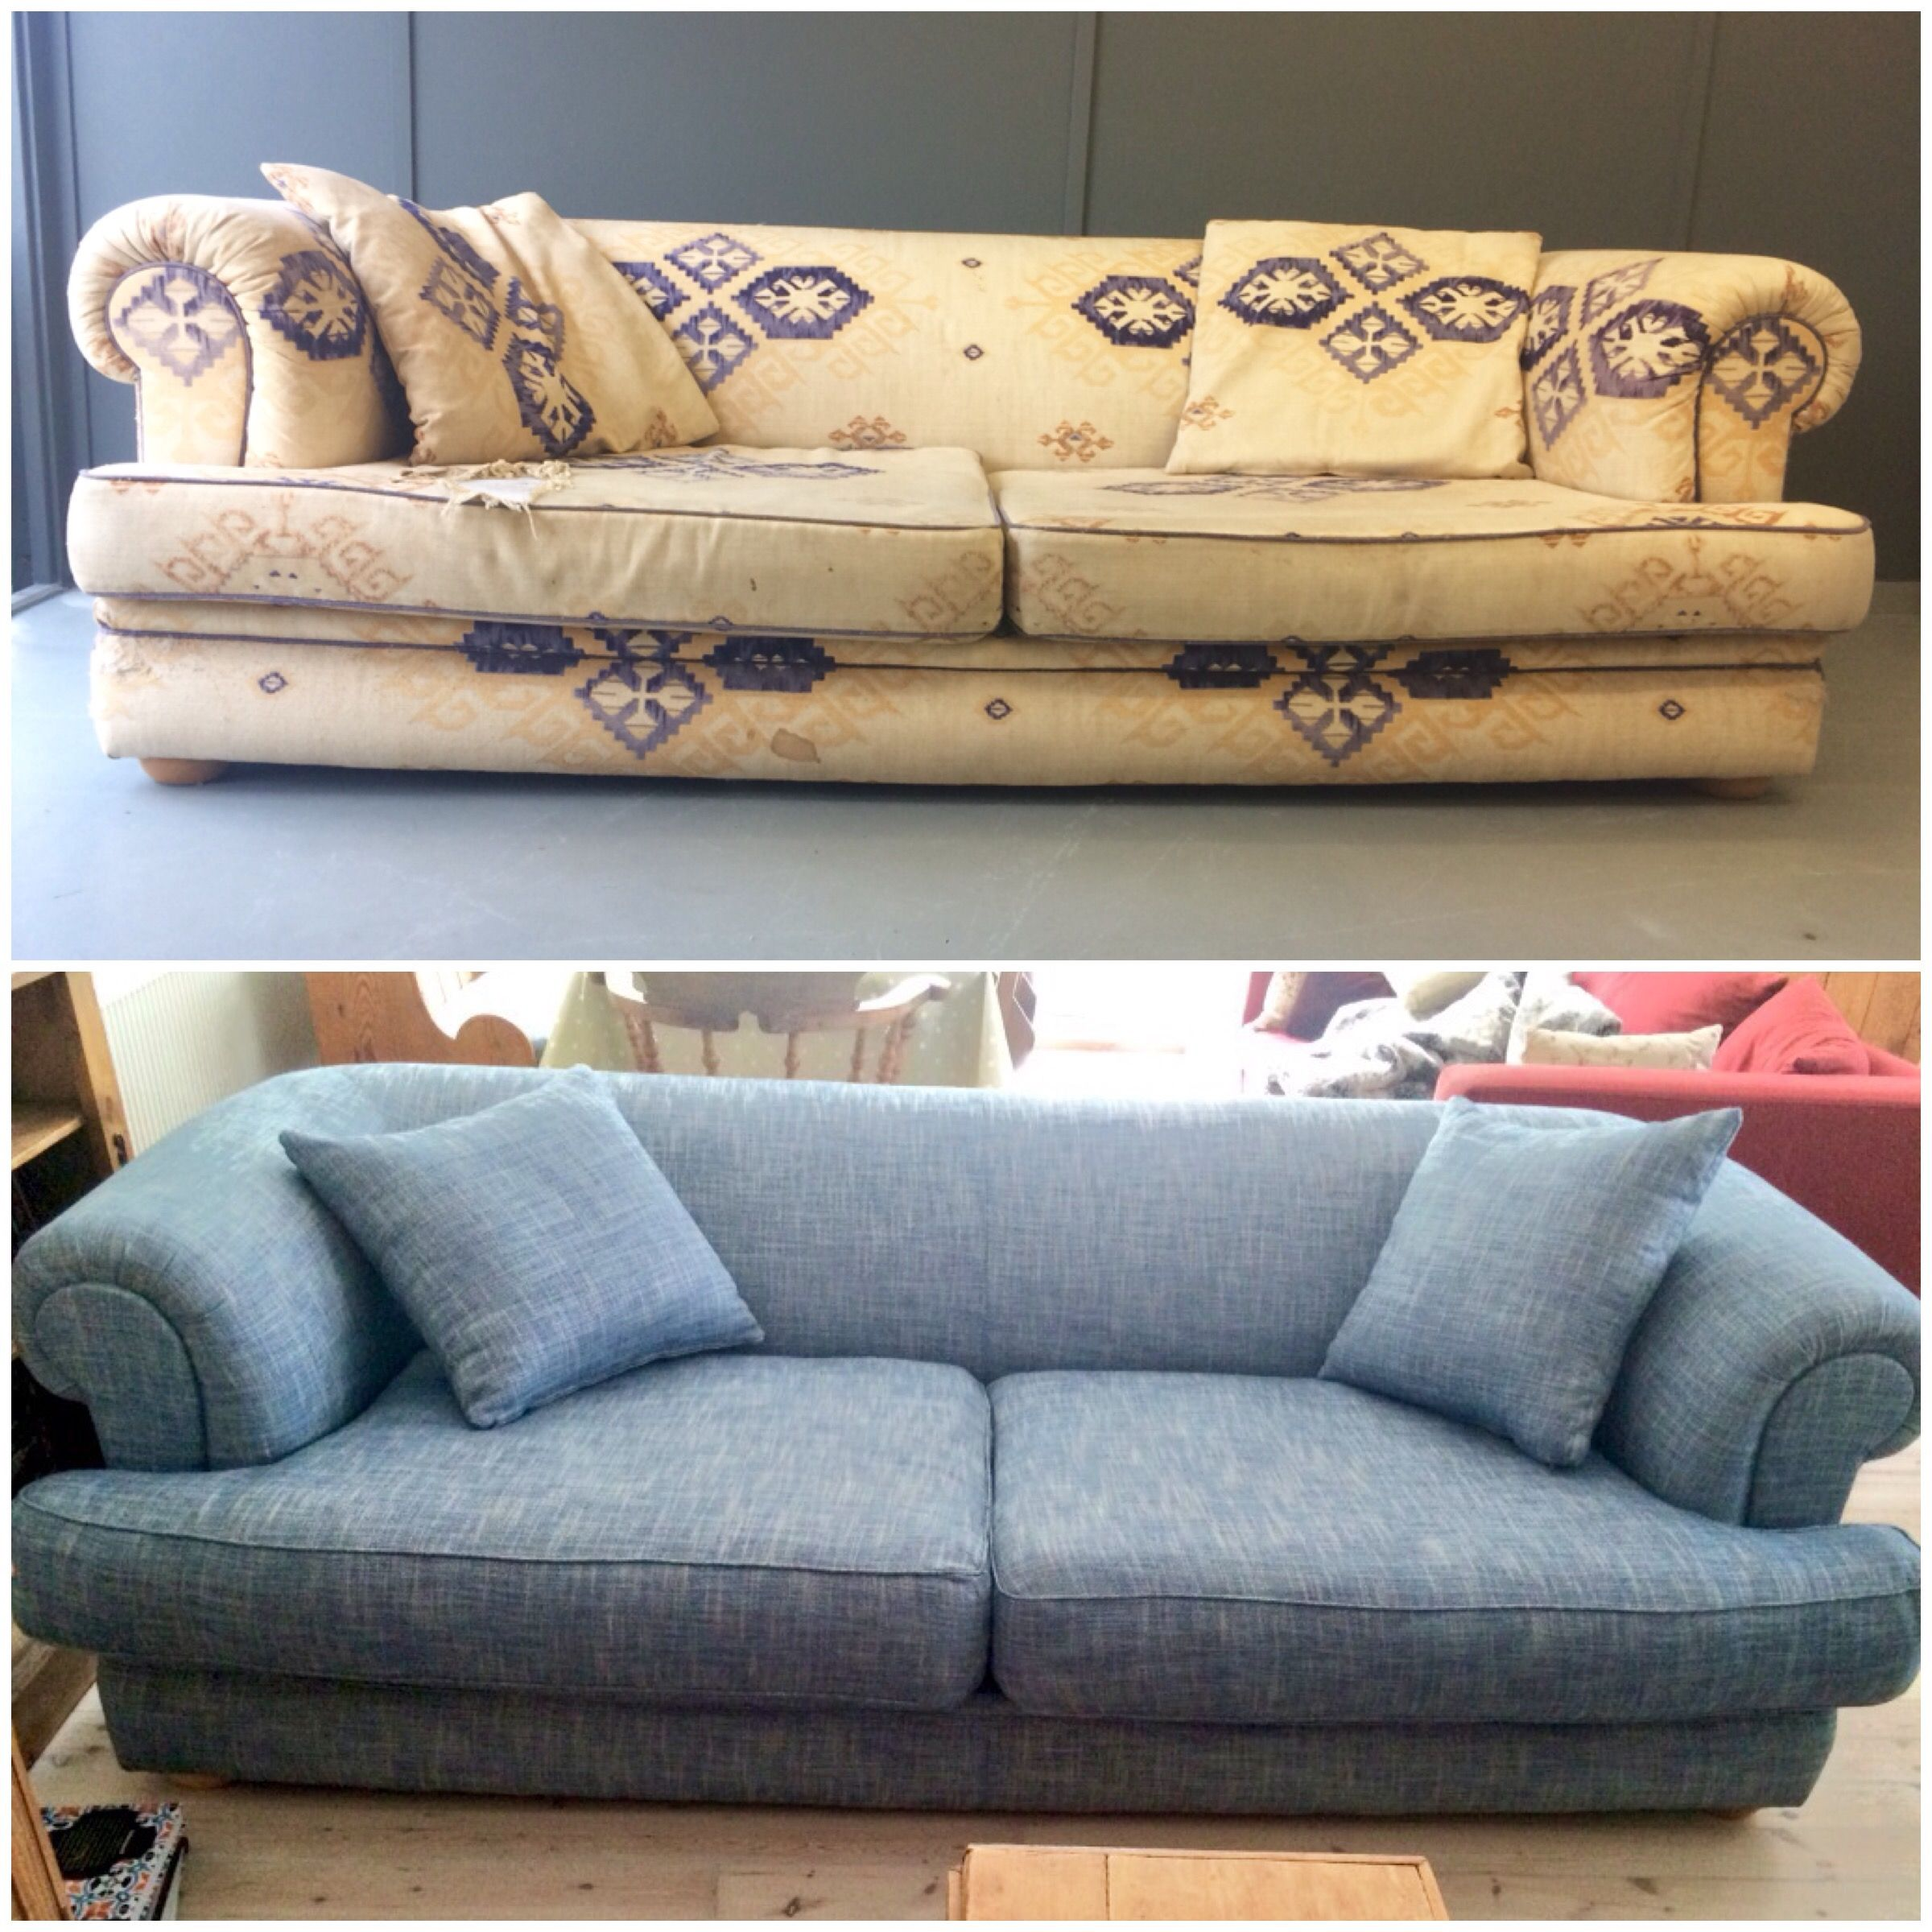 New fabric and new scatter cushions was all this sofa needed to